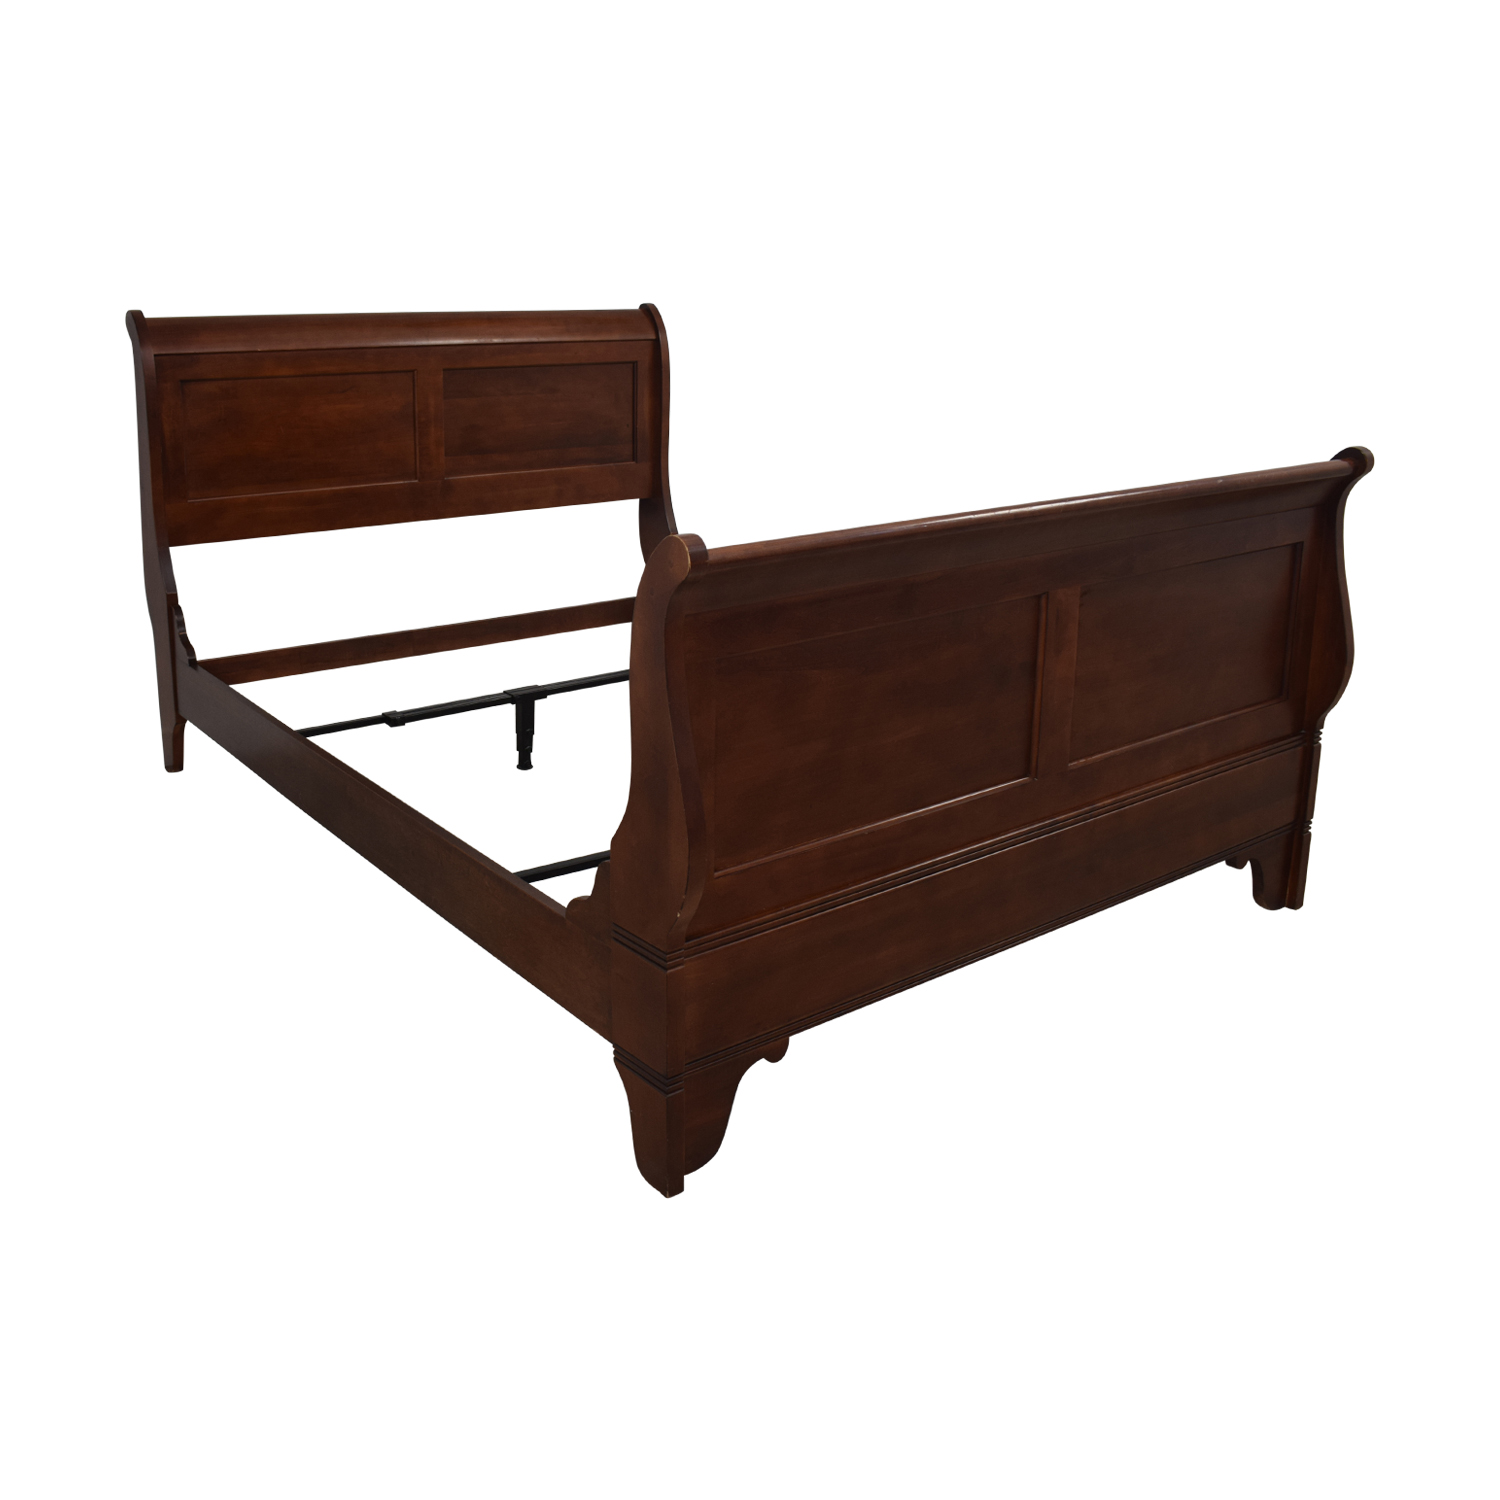 Kincaid Wood Sleigh Queen Bed Frame Kincaid